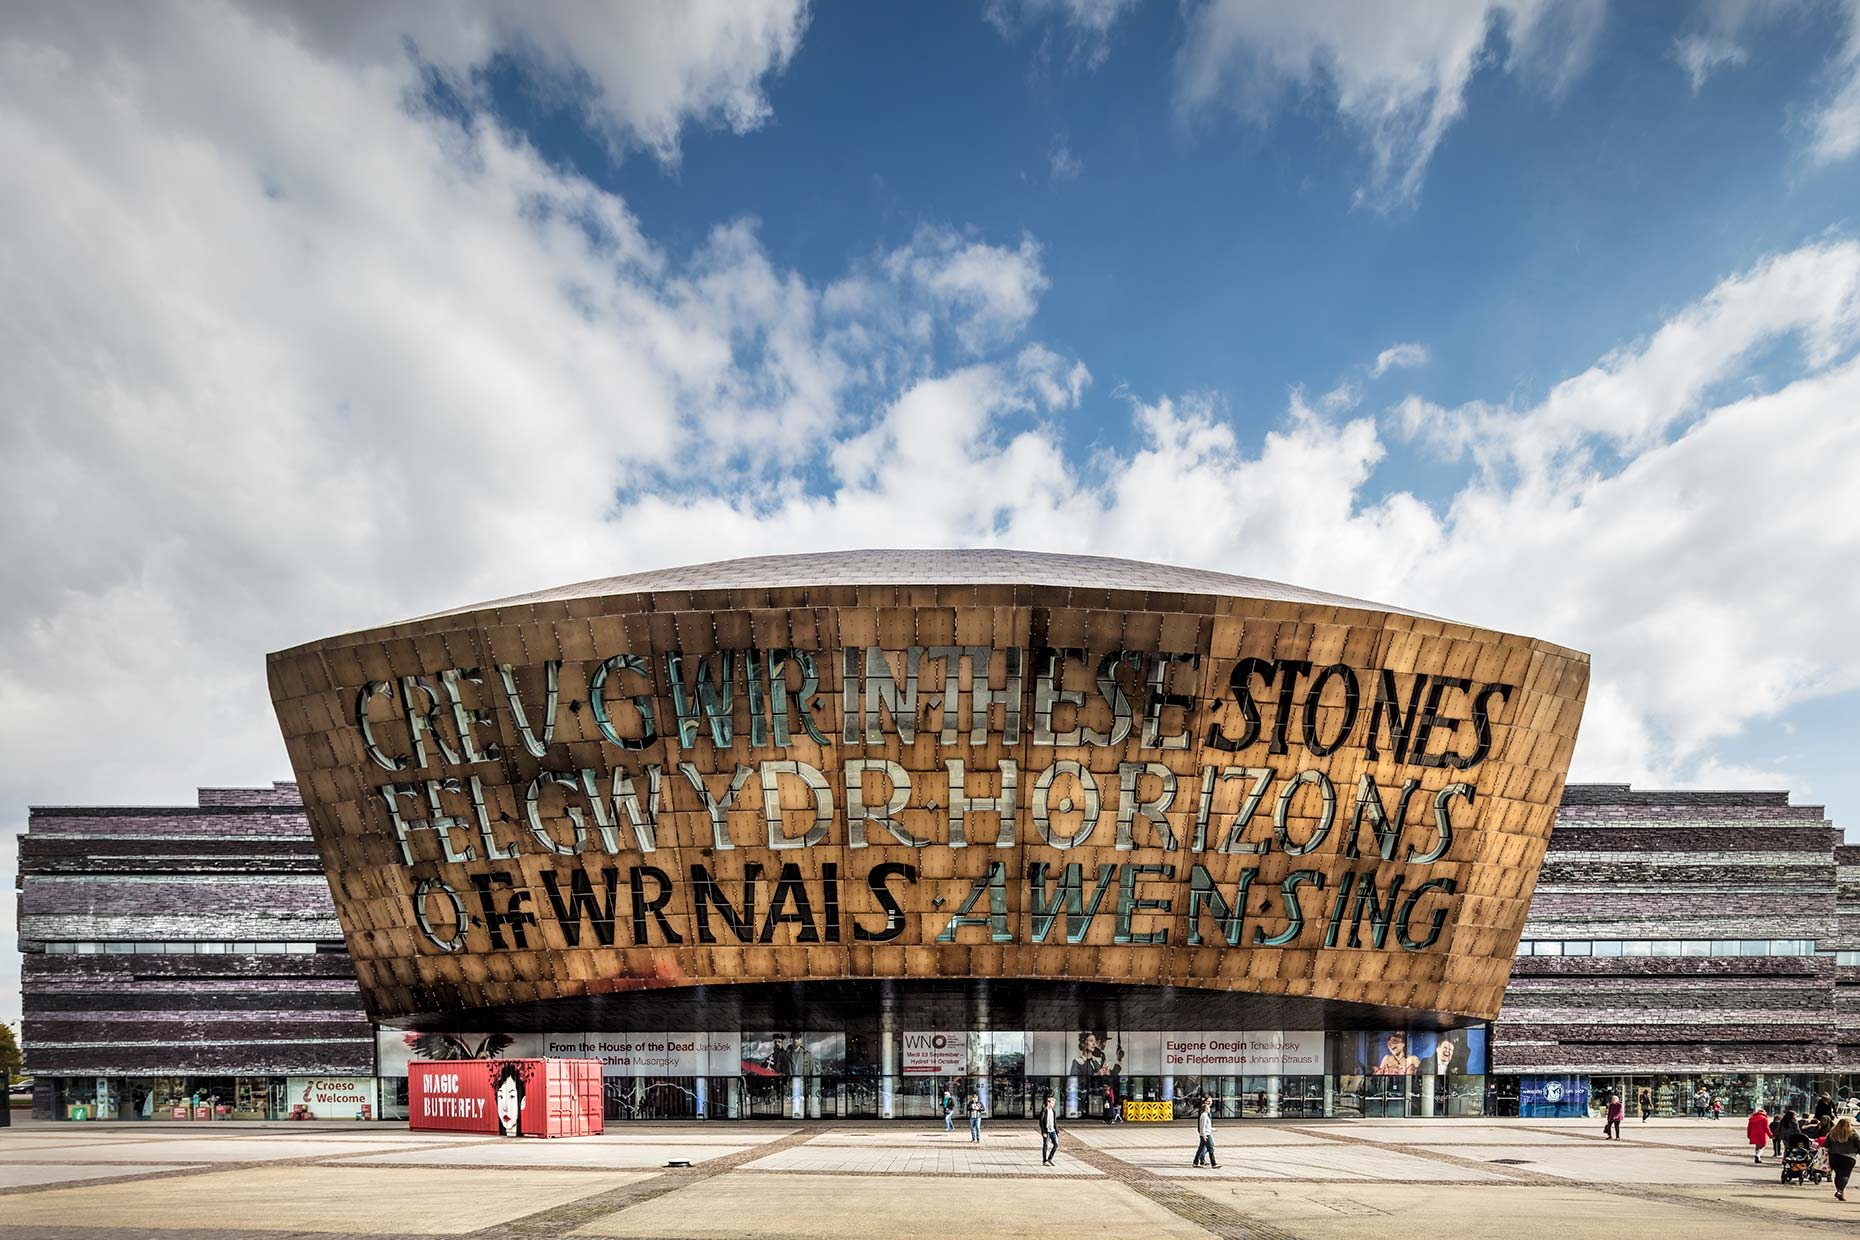 Exterior view of the Wales Millennium Centre, Cardiff Bay © Michael Evans Photographer 2017